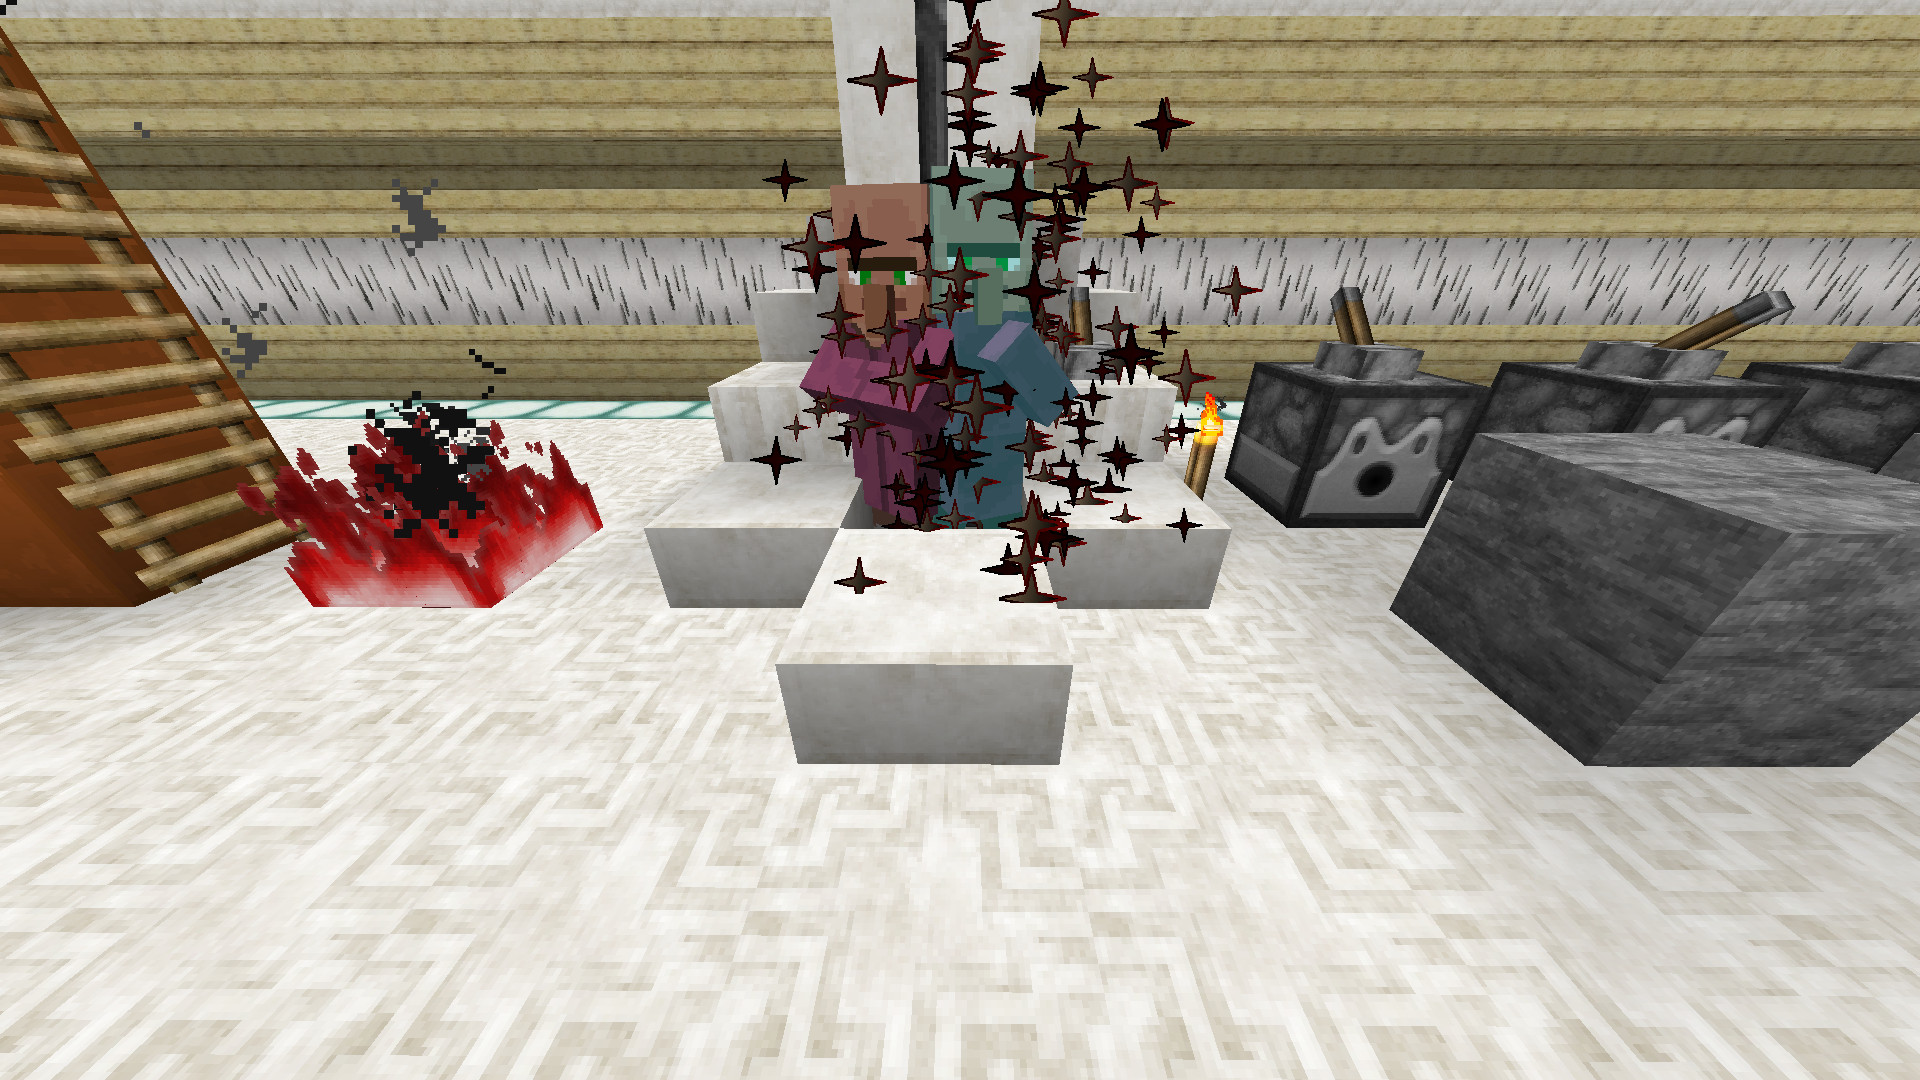 [SCARLET]Mixpack